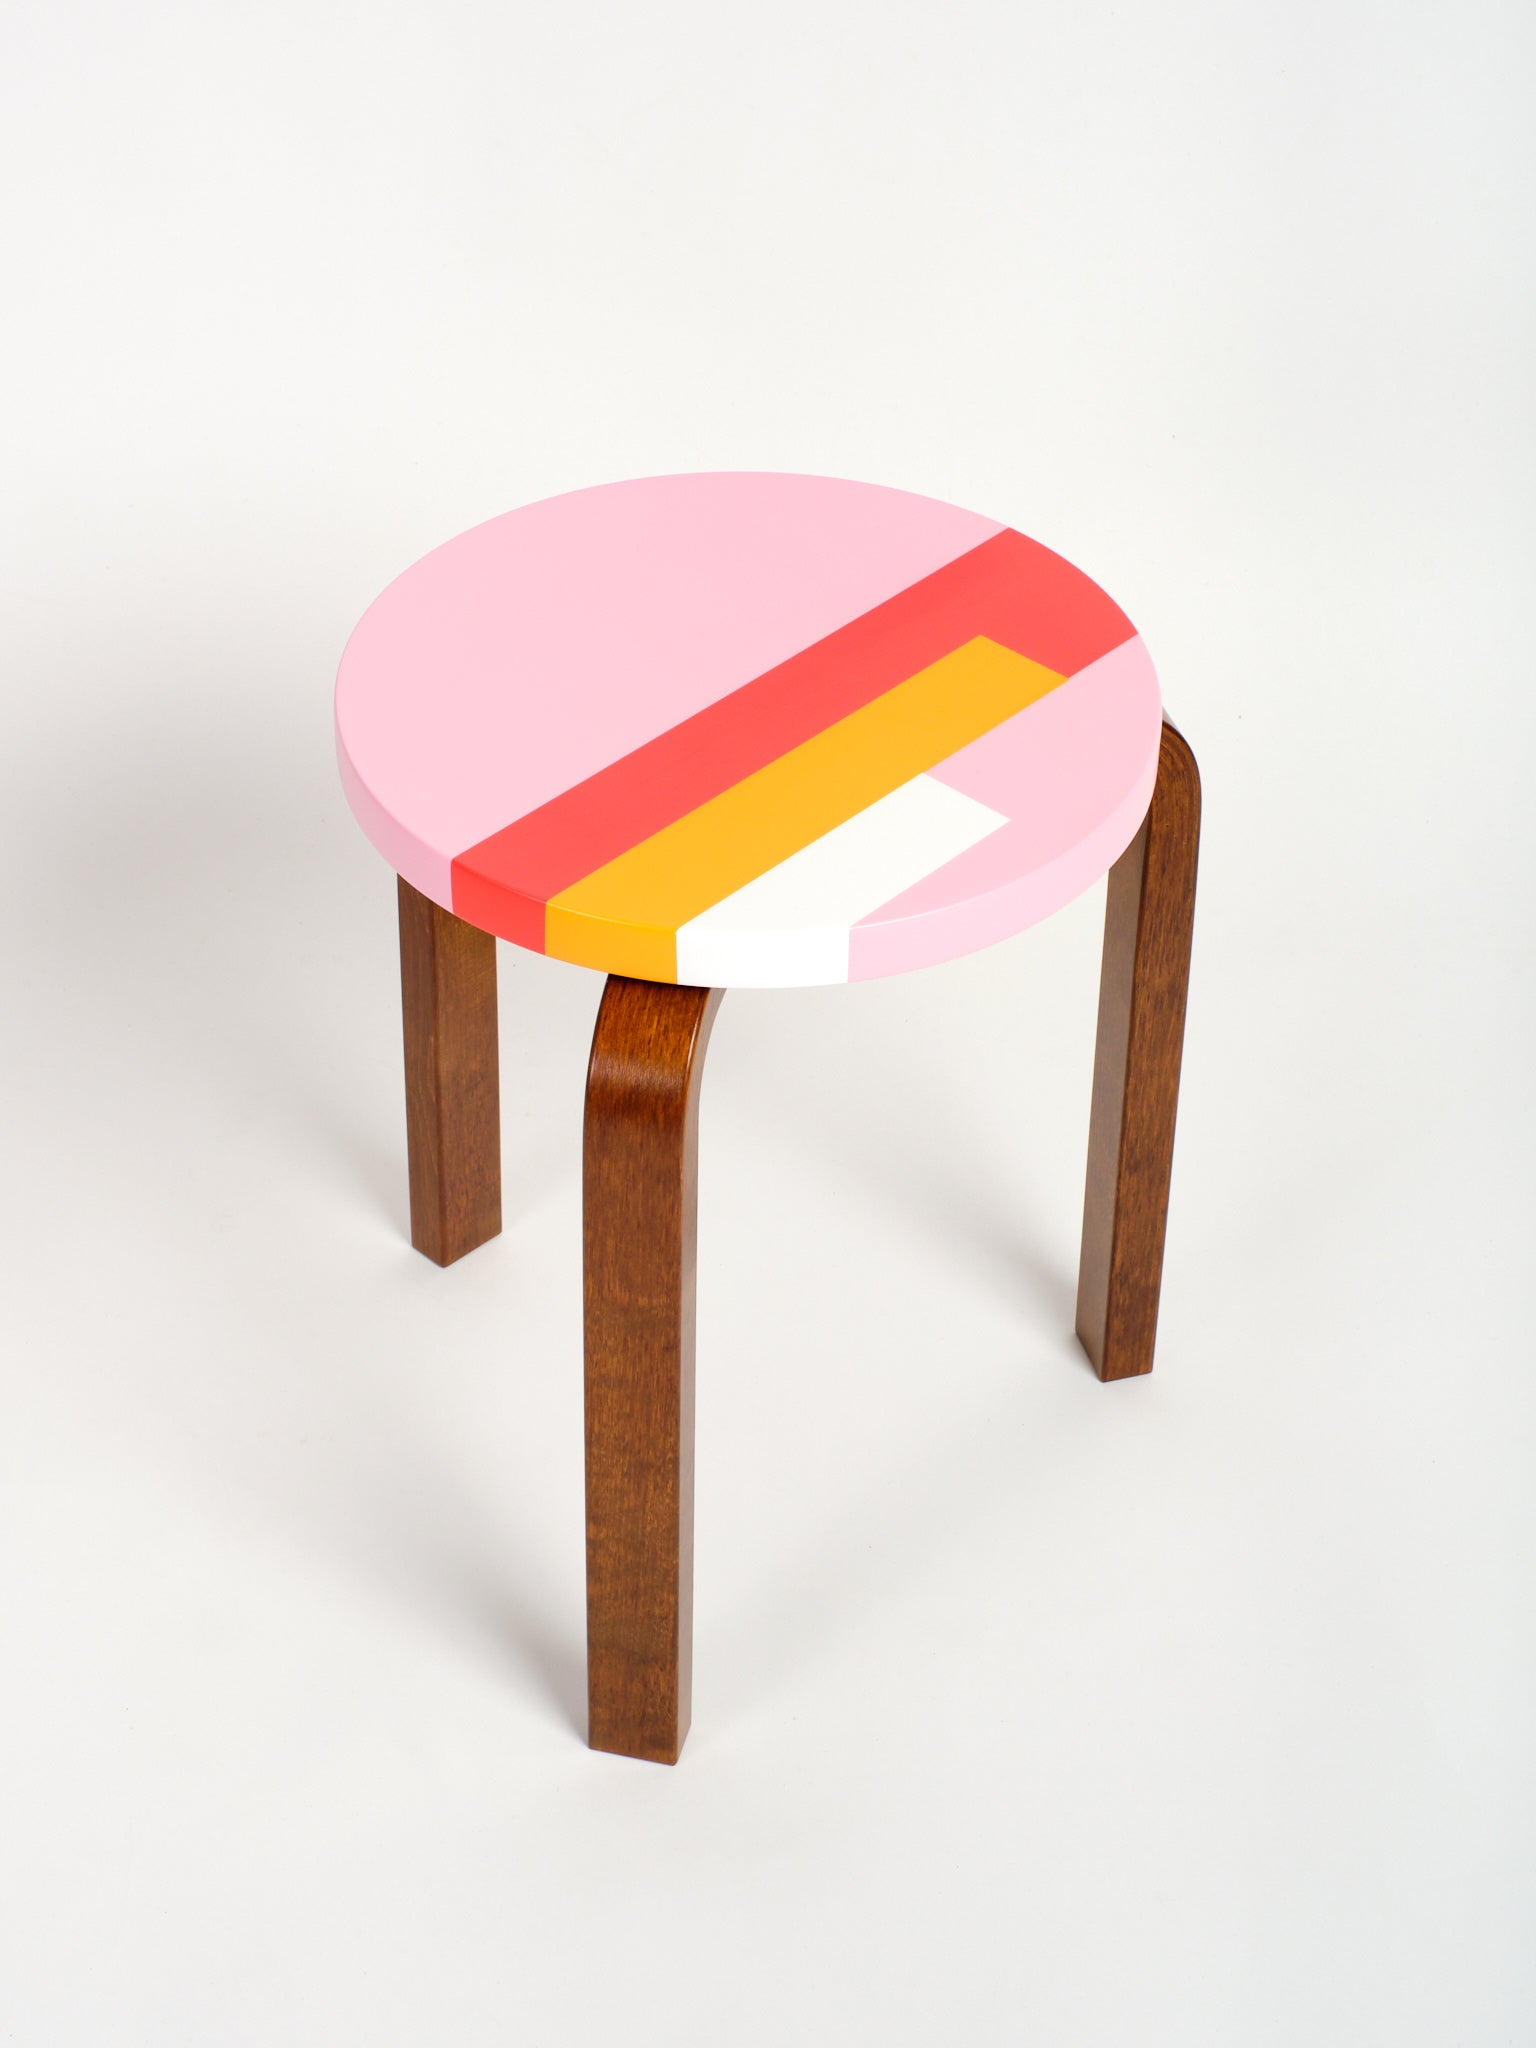 LTD ED FNC Artek Stool 60, Rose 02